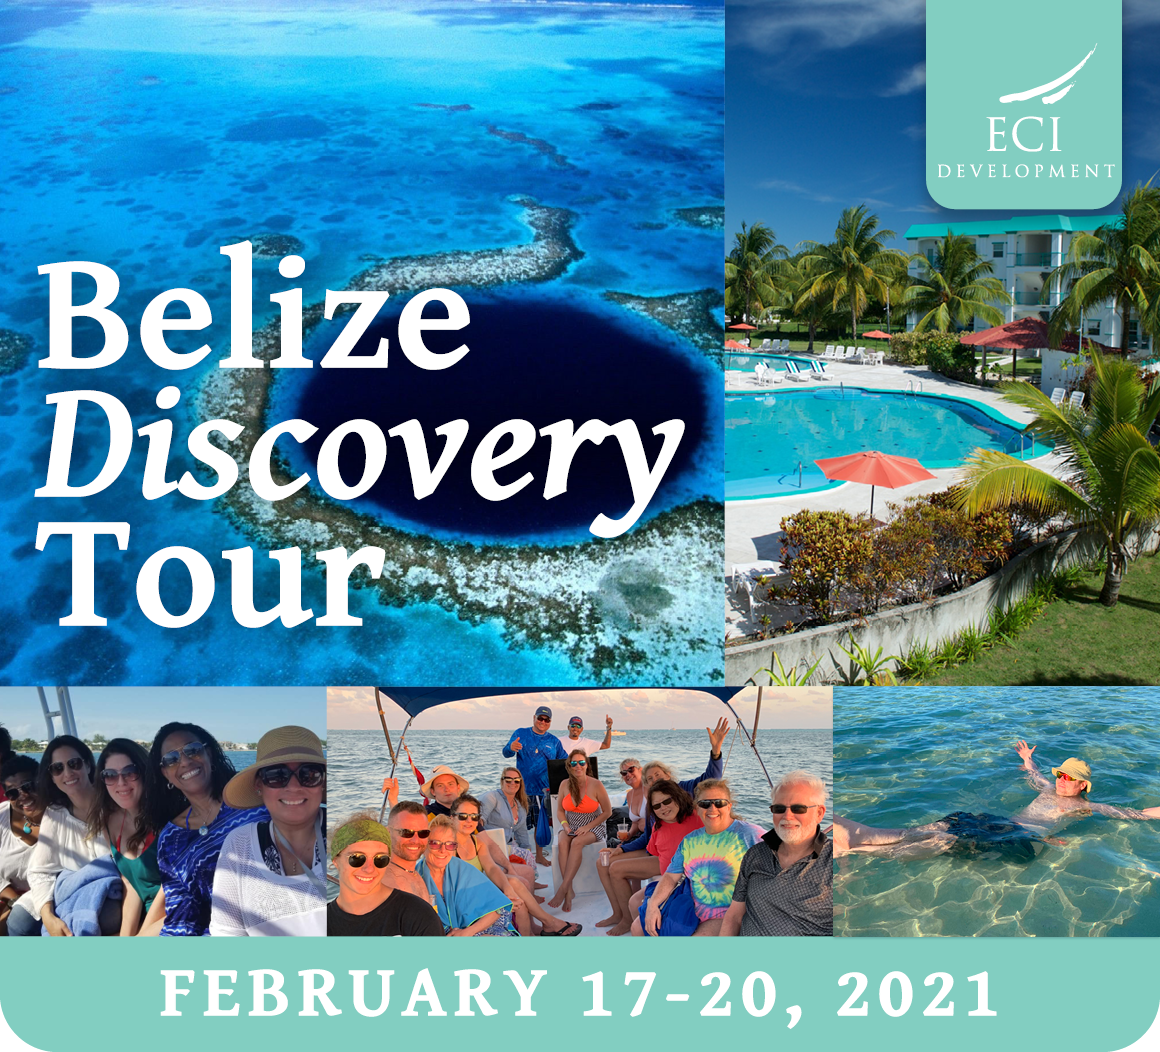 Belize Discovery Tour Email Hero Image (1)